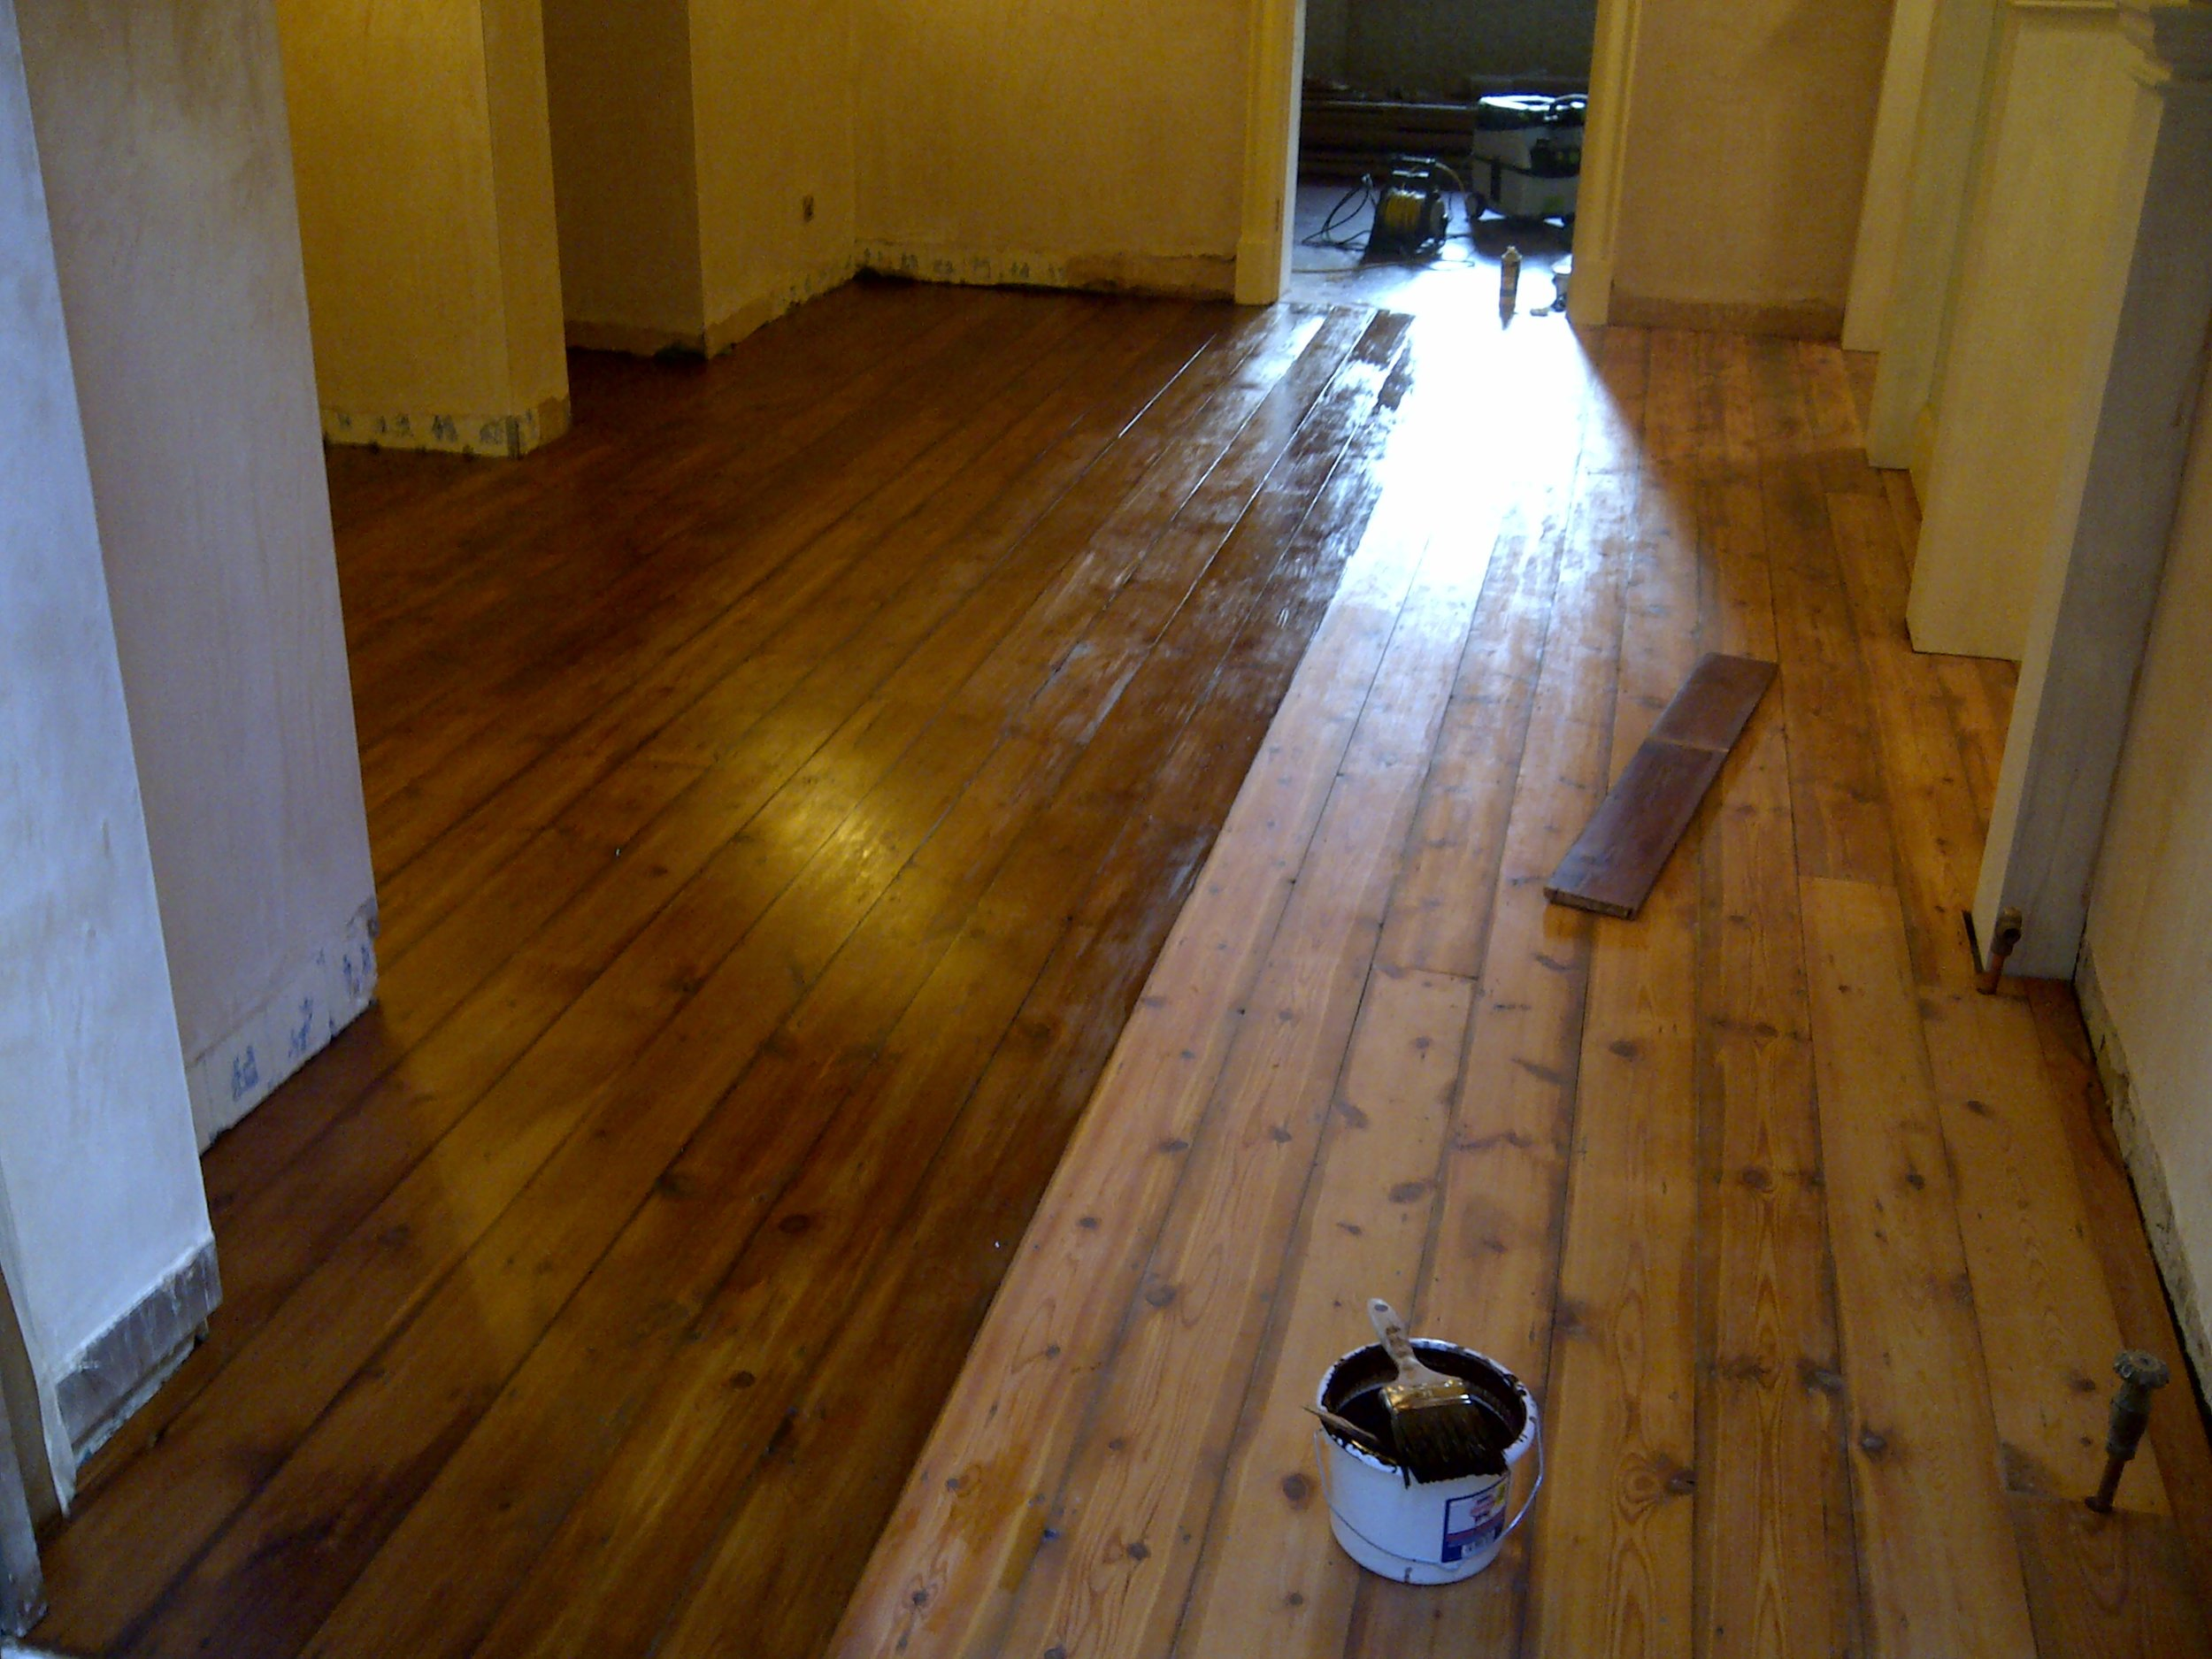 Staining - Numerous stains and layers of polish were mixed in order to match the existing flooring.